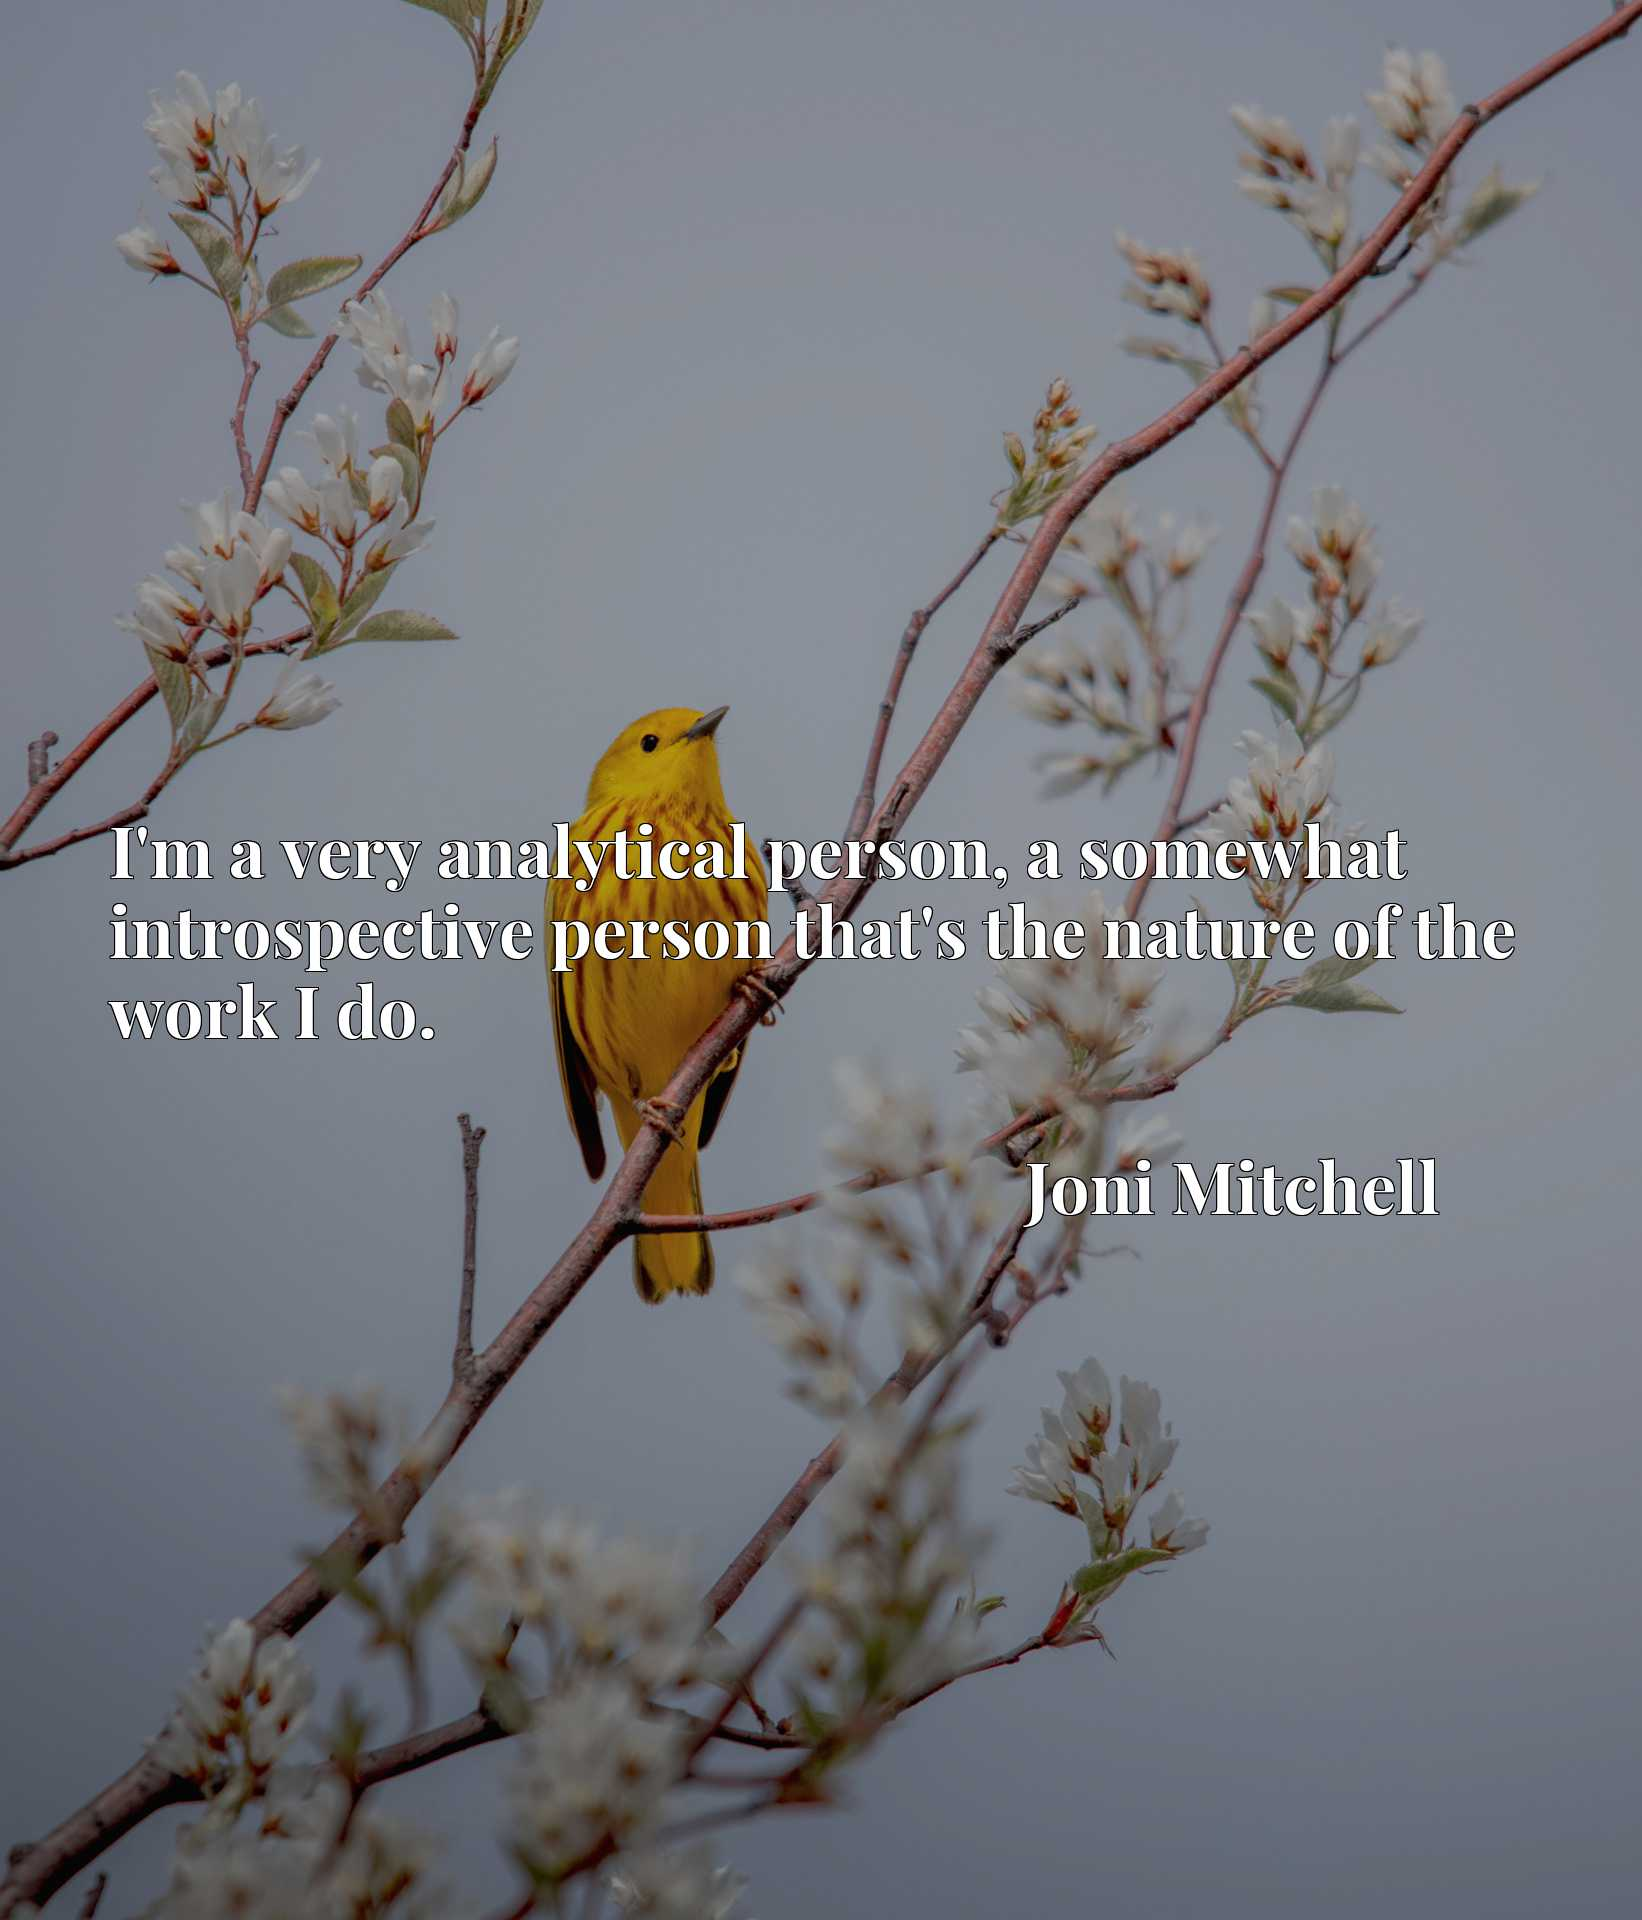 Quote Picture :I'm a very analytical person, a somewhat introspective person that's the nature of the work I do.